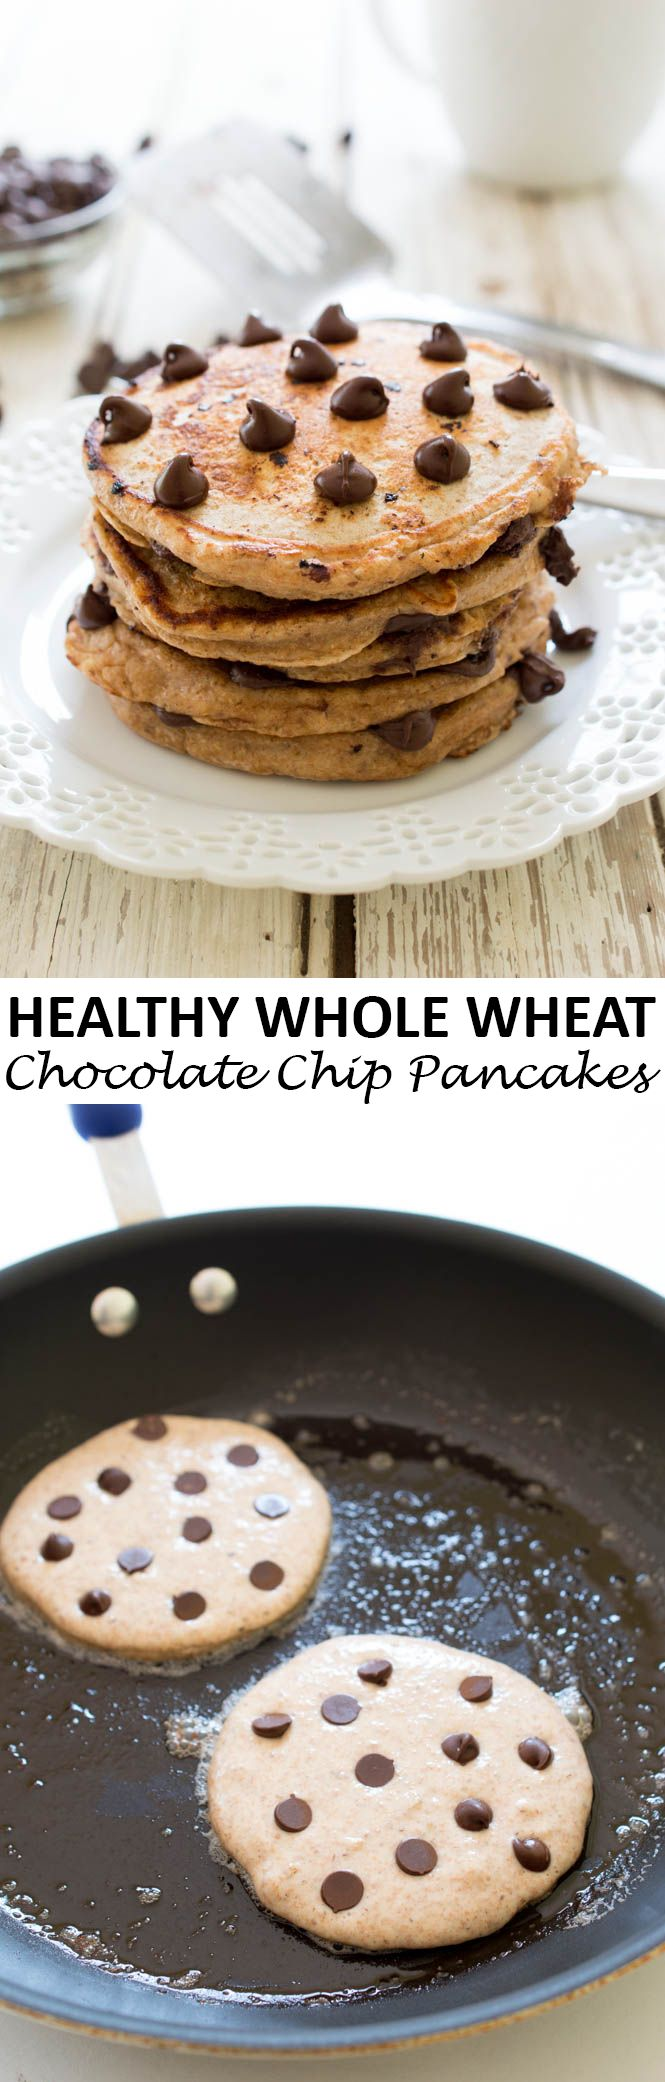 Healthy Whole Wheat Chocolate Chip Pancakes. Made with Greek Yogurt, whole wheat flour and semi-sweet chocolate chips. A healthy and satisfying breakfast!